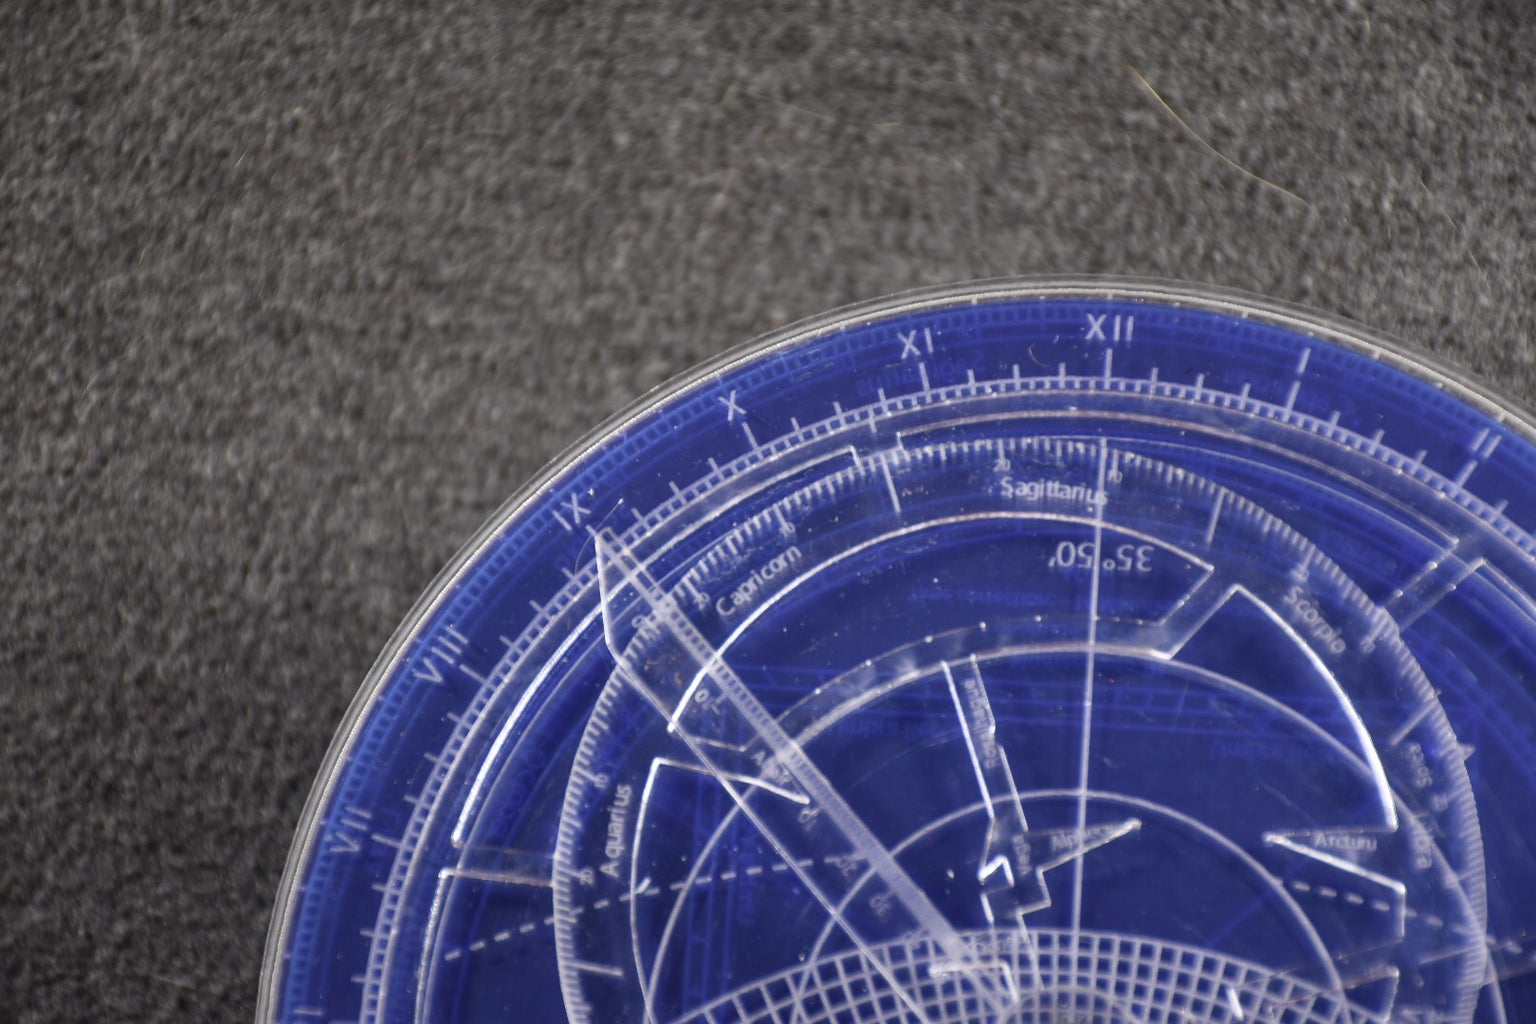 Aligning Your Astrolabe With the Universe